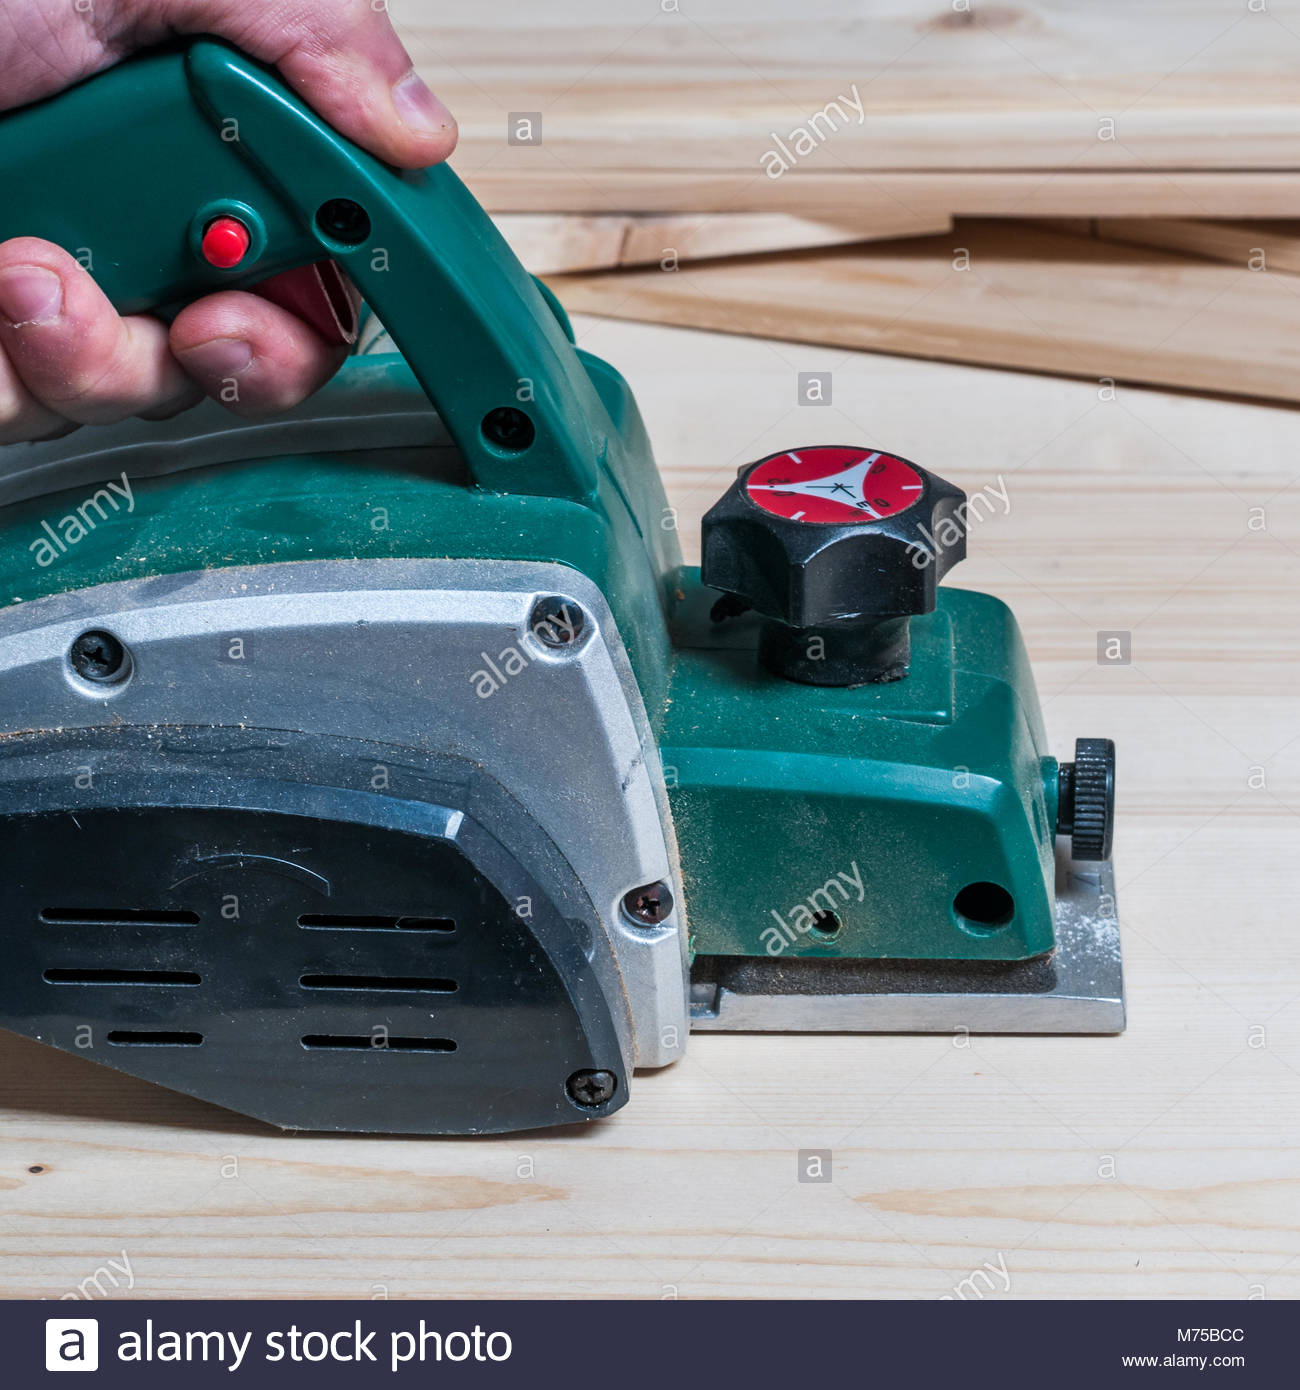 Electric Planer Stock Photos Images Alamy What Does An Do Carpenter Planing A Wood Surface With Tool Square Composition